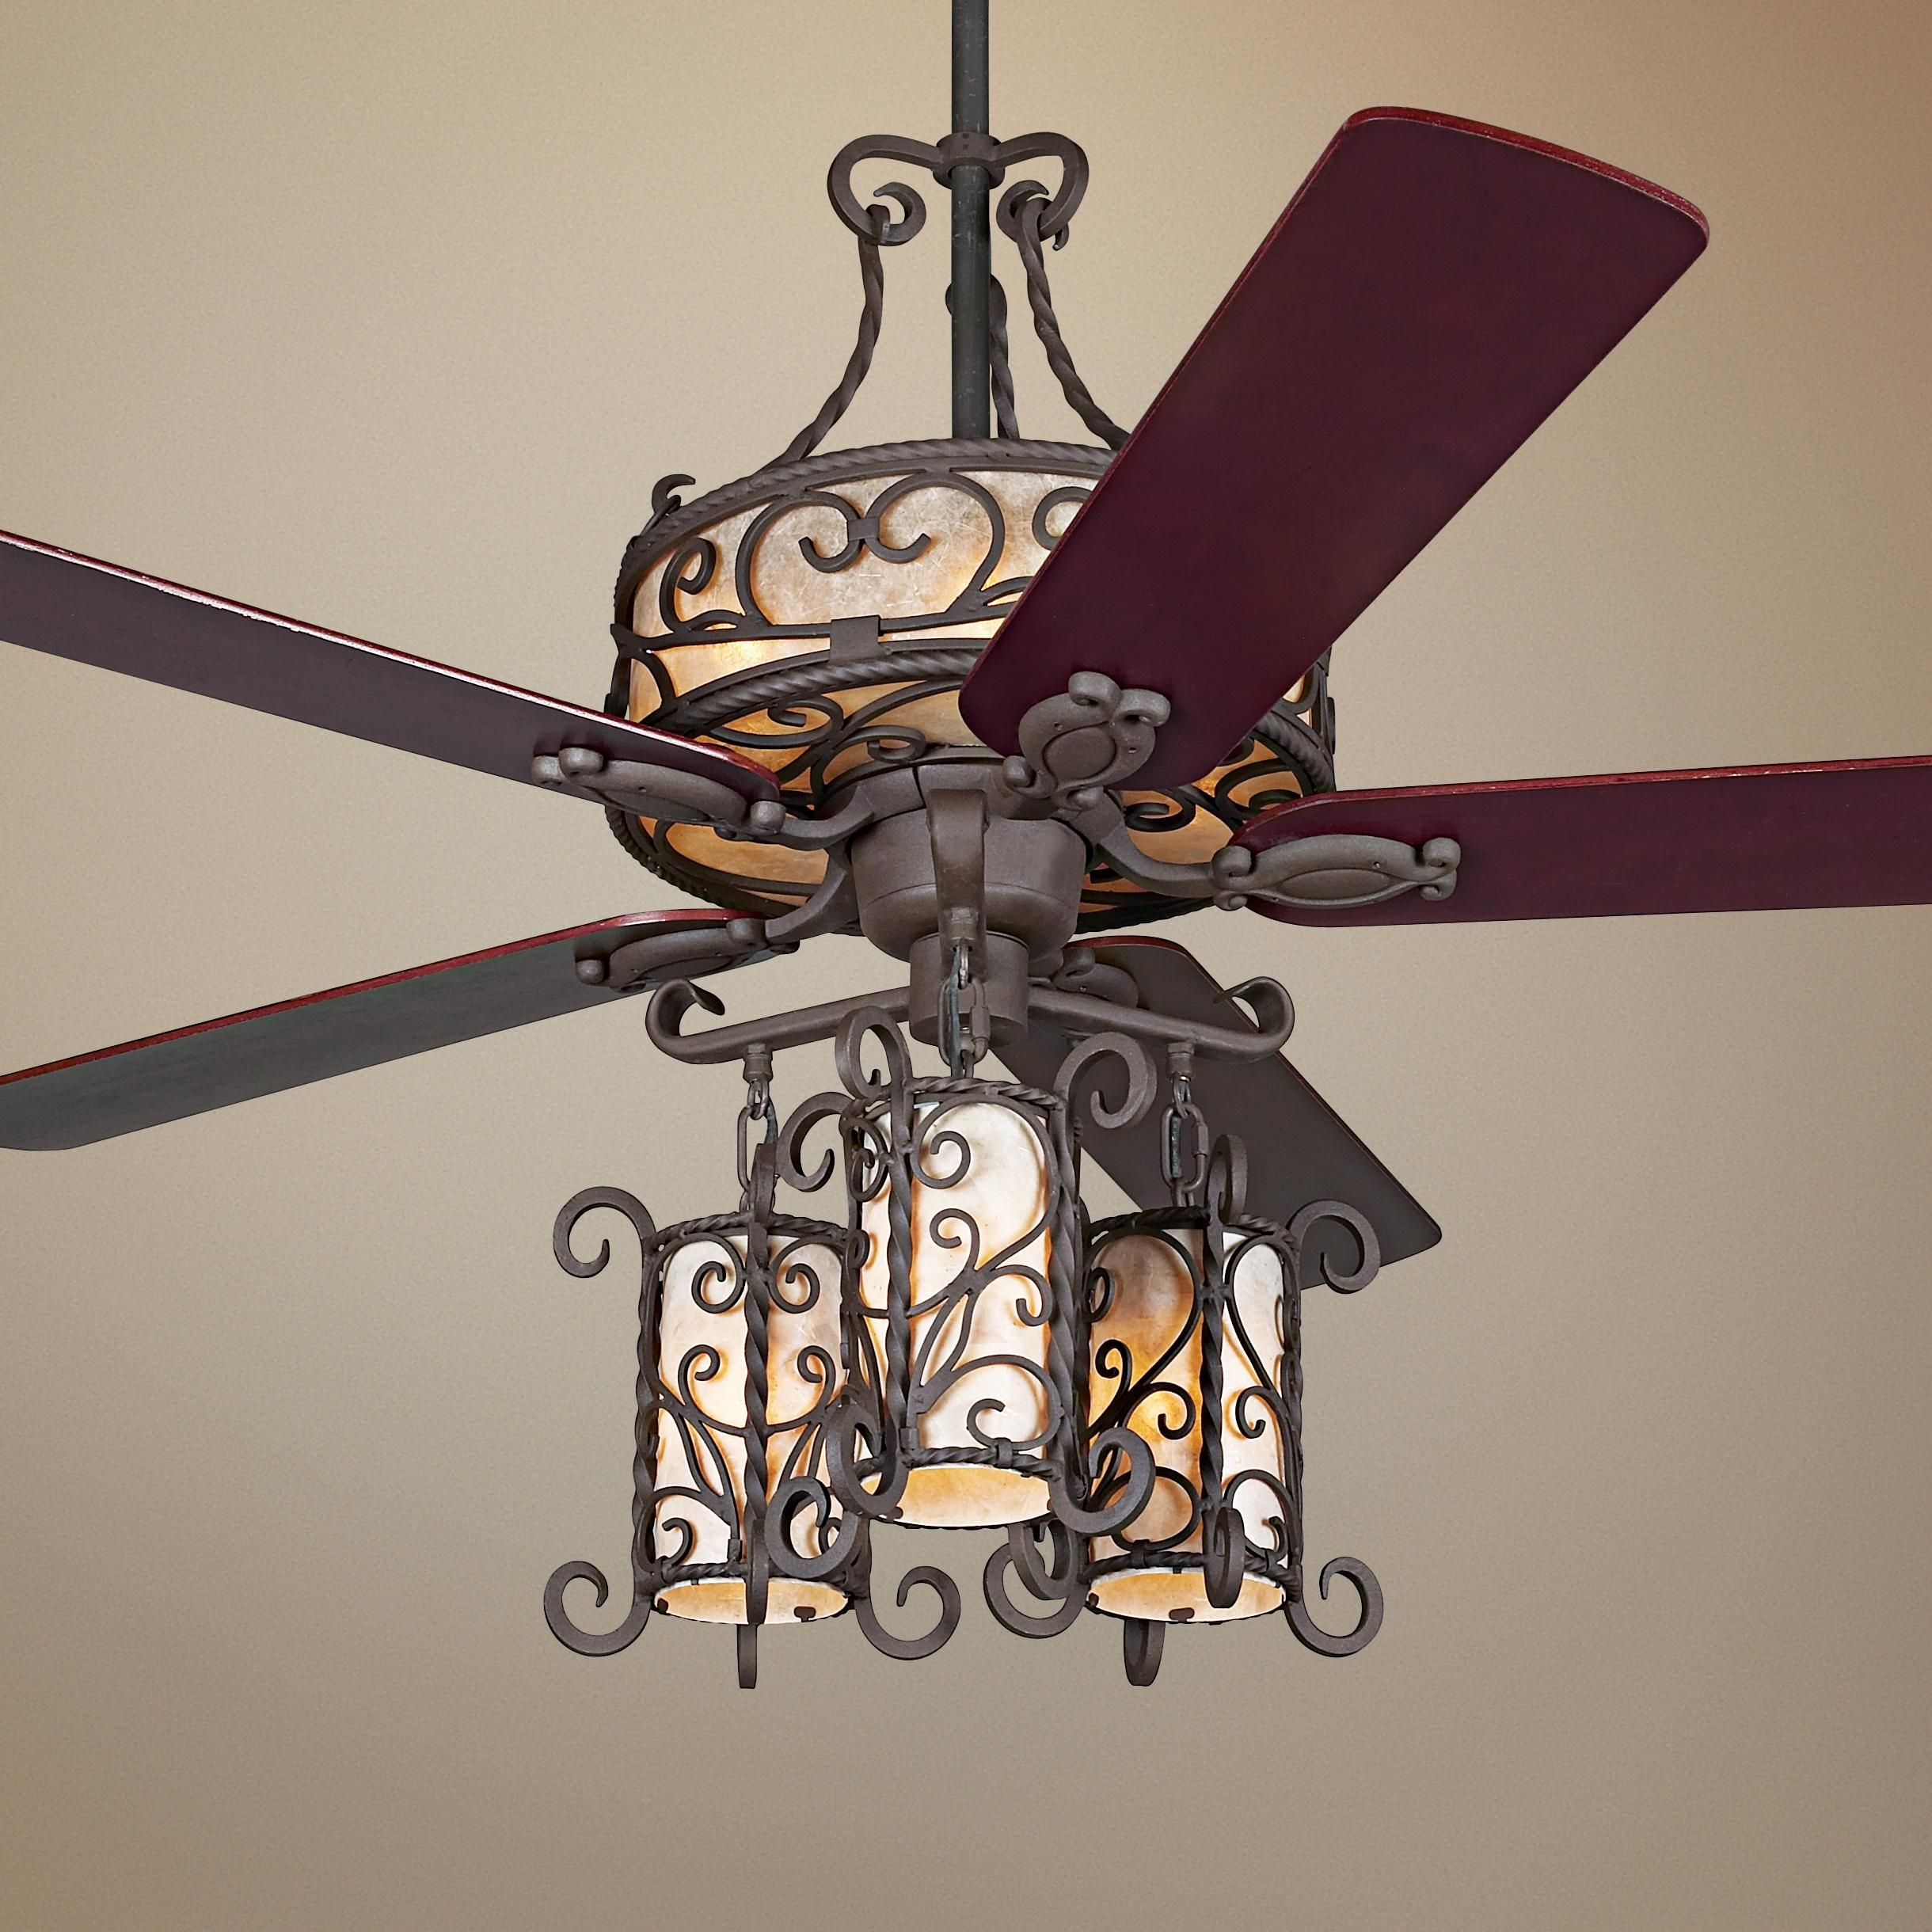 60 John Timberland Seville Iron Ceiling Fan With Remote